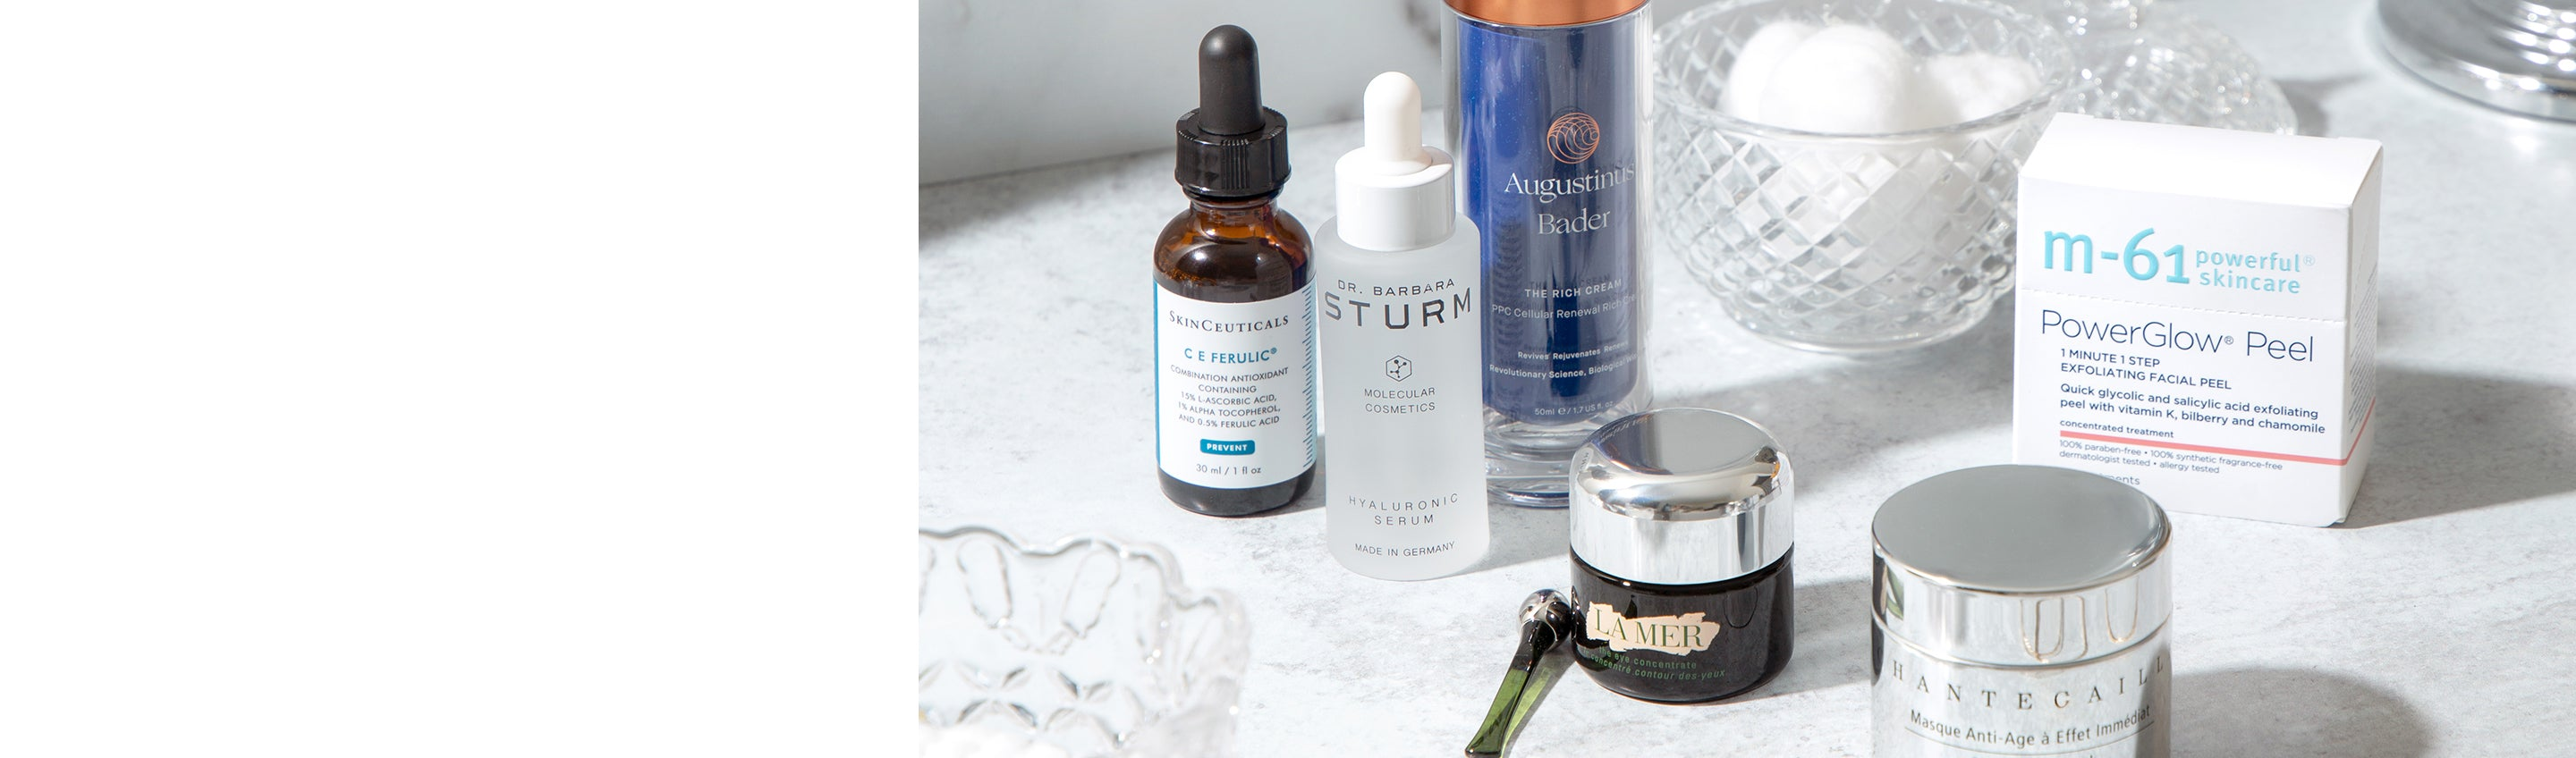 Skincare products from M-61, La Mer, Chantecaille, SkinCeuticals, Dr. Barbara Sturm, and Augustinus Bader